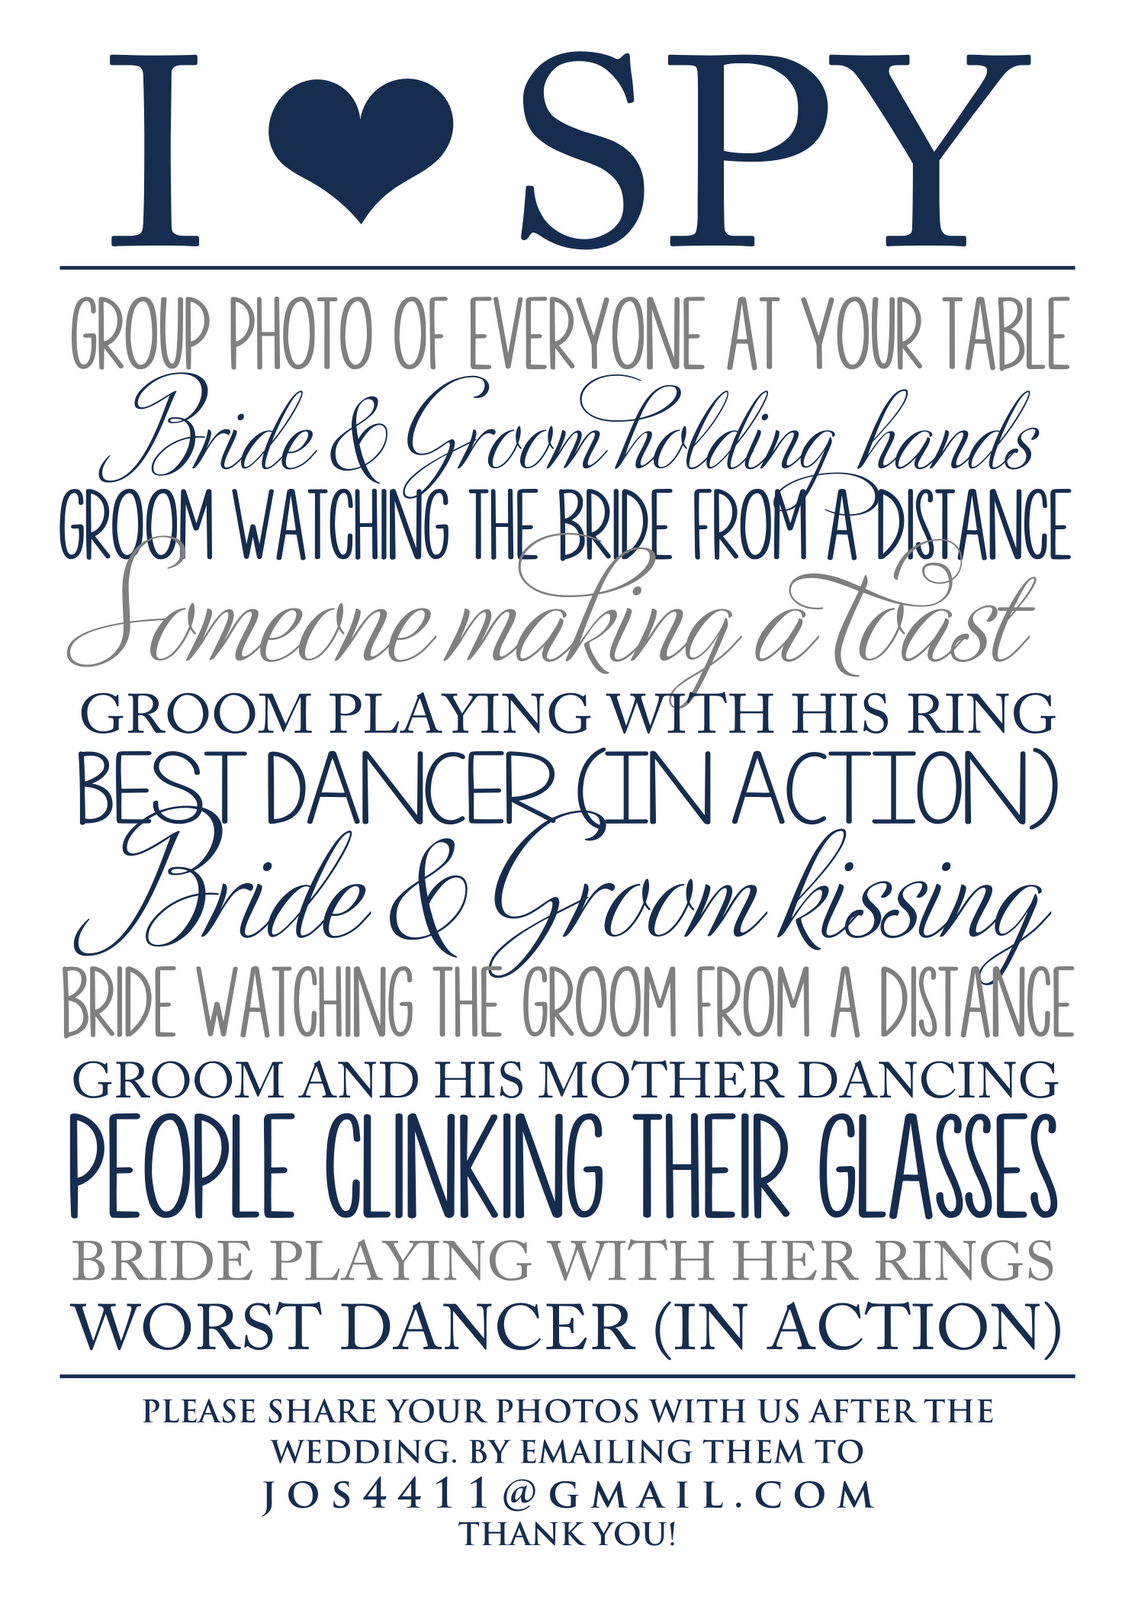 i spy wedding template - Google Search | for one day...when my ...